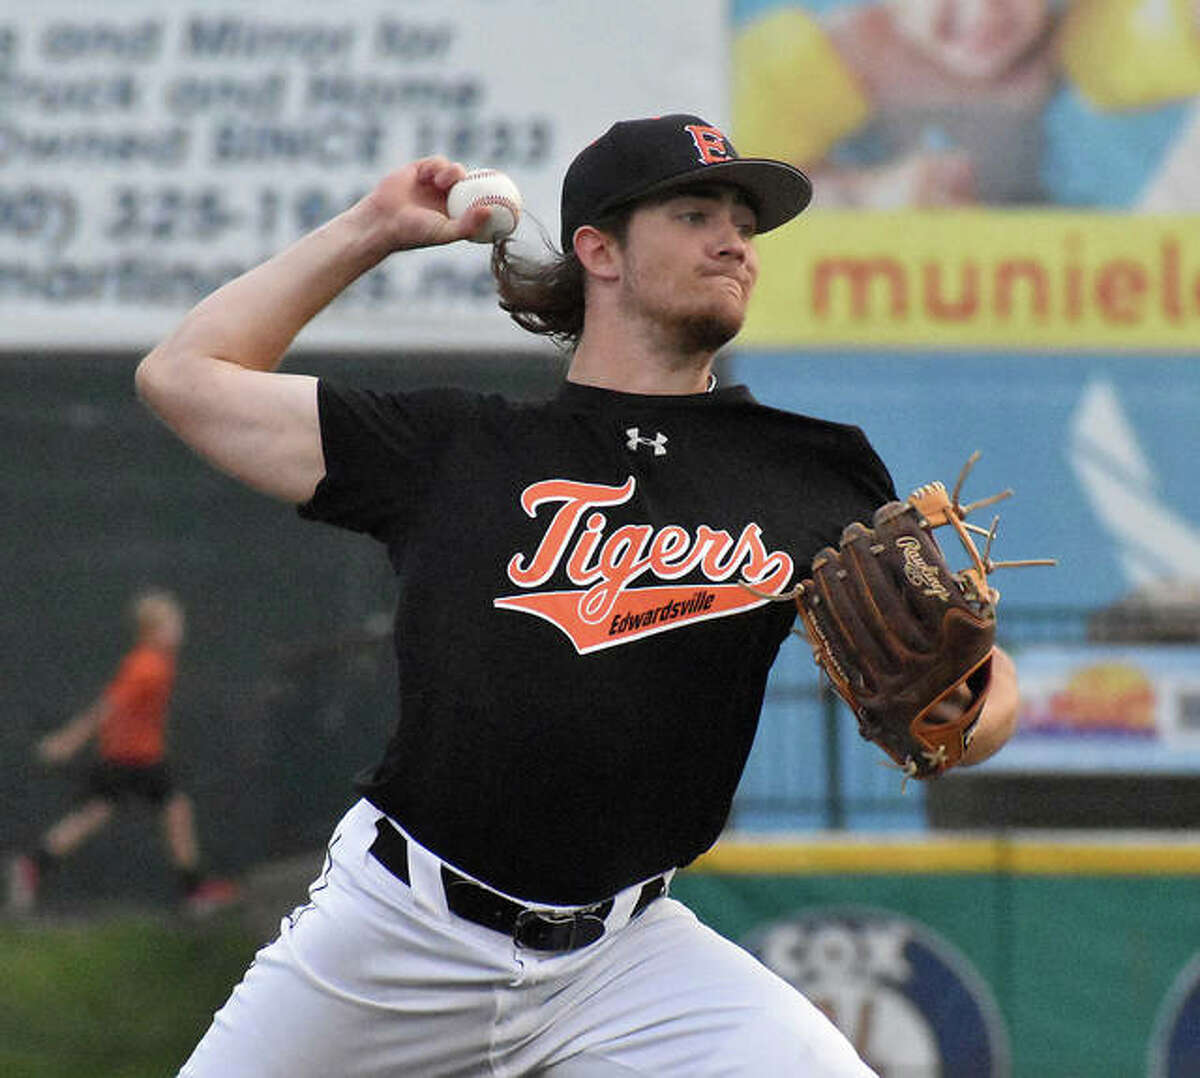 Edwardsville pitcher Collin Salter delivers a pitch in the first inning against Granite City on Monday at GCS Stadium in Sauget.